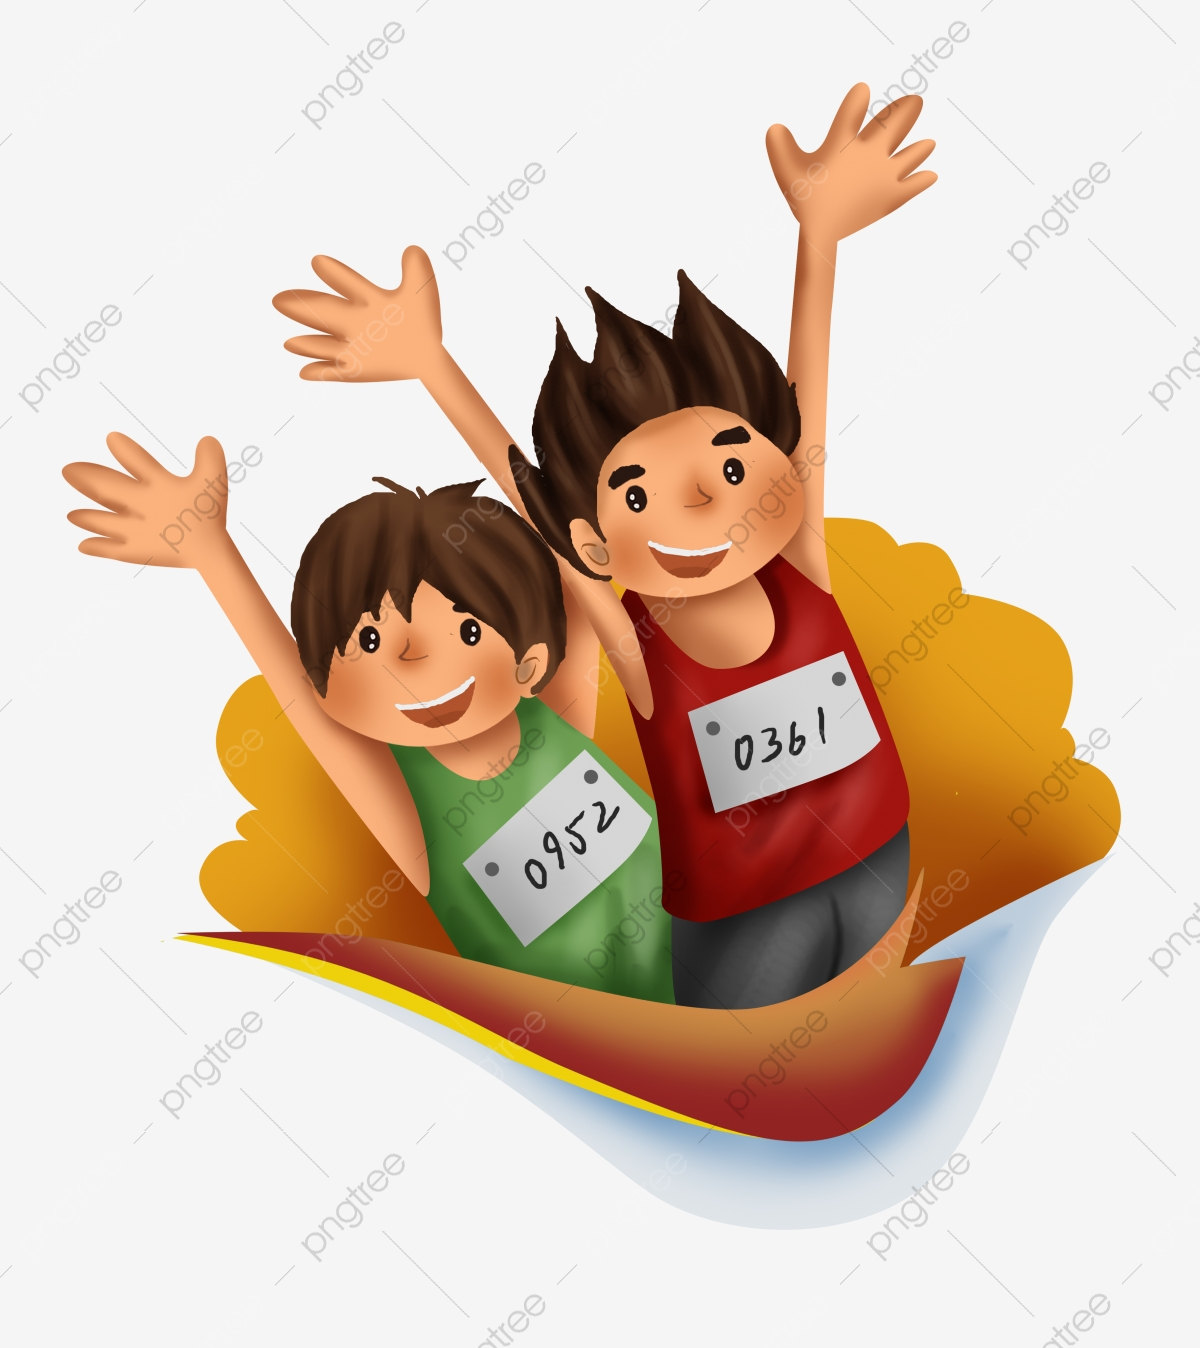 Competition clipart uses. Track and field long